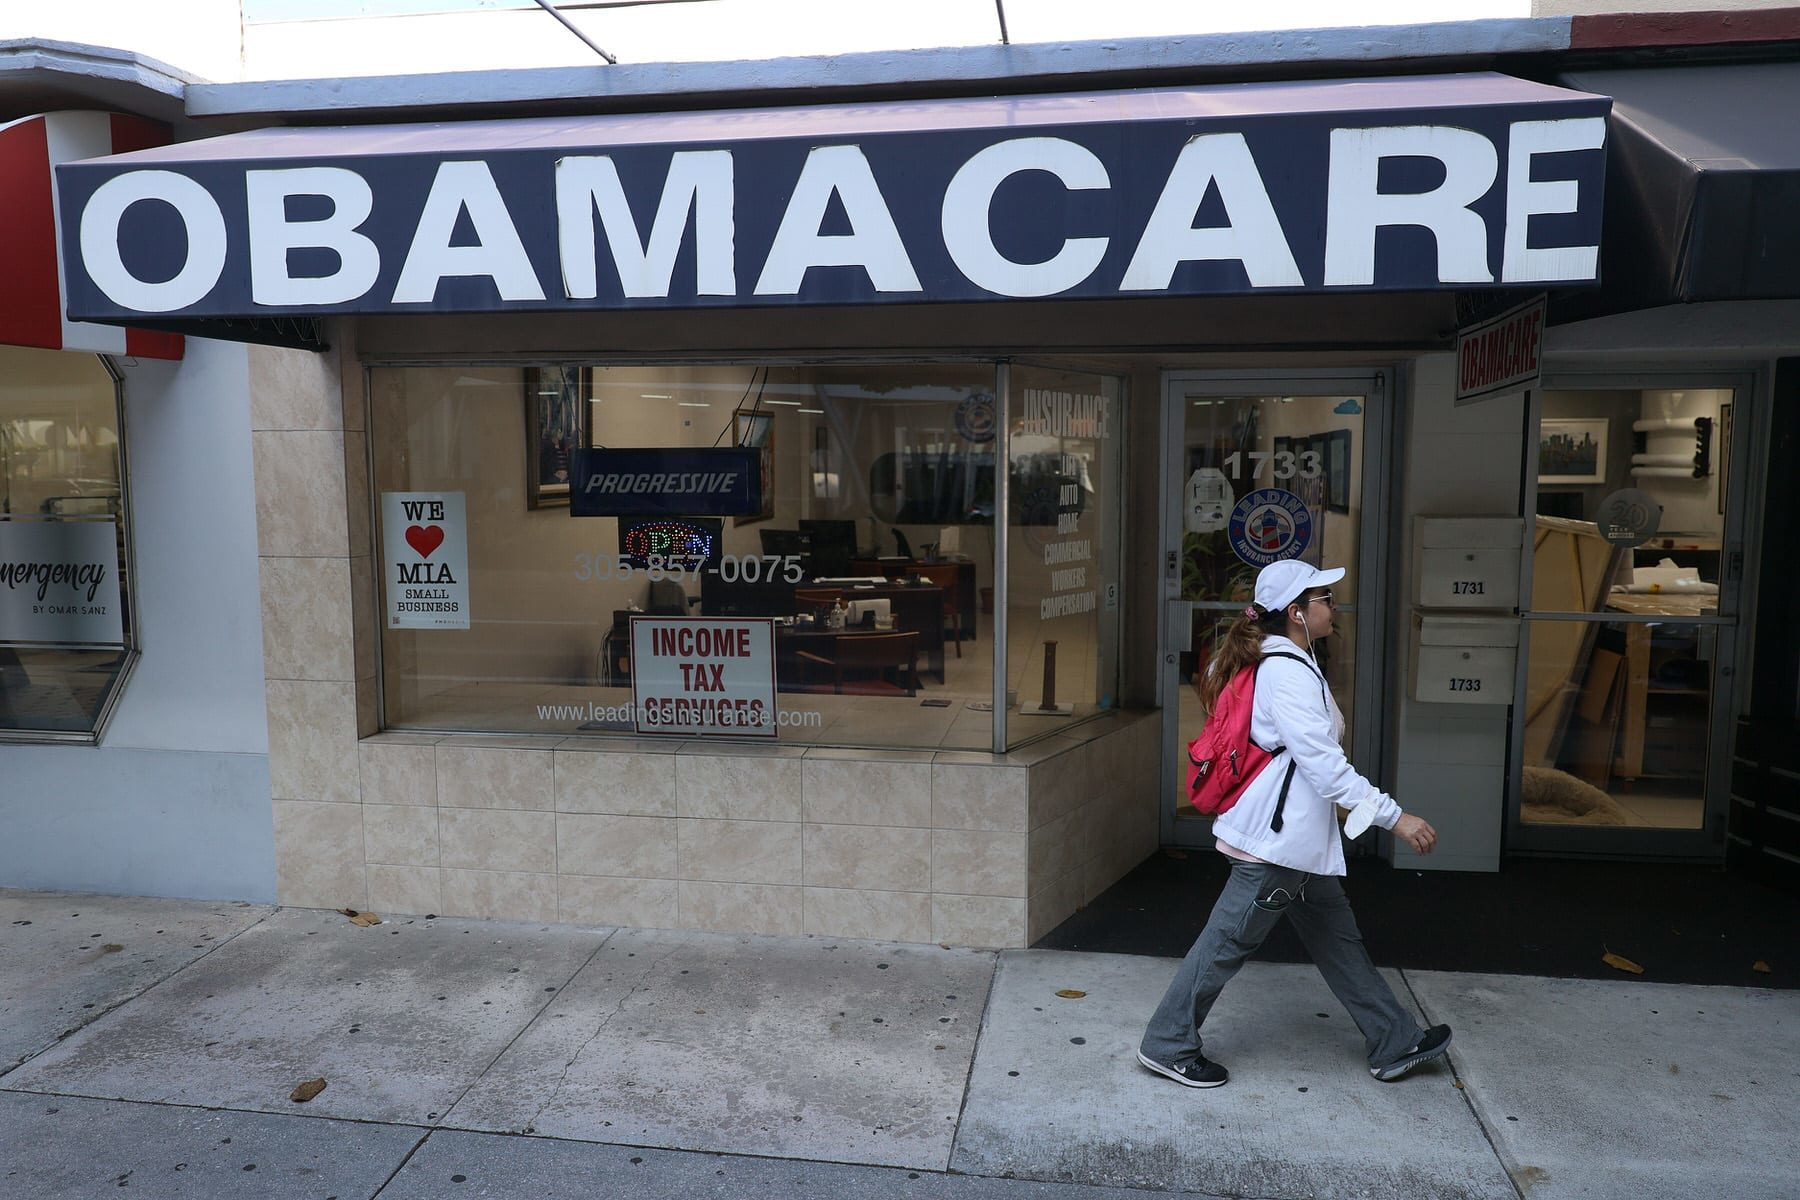 A woman walks past a lending agency with a large Obamacare sign.